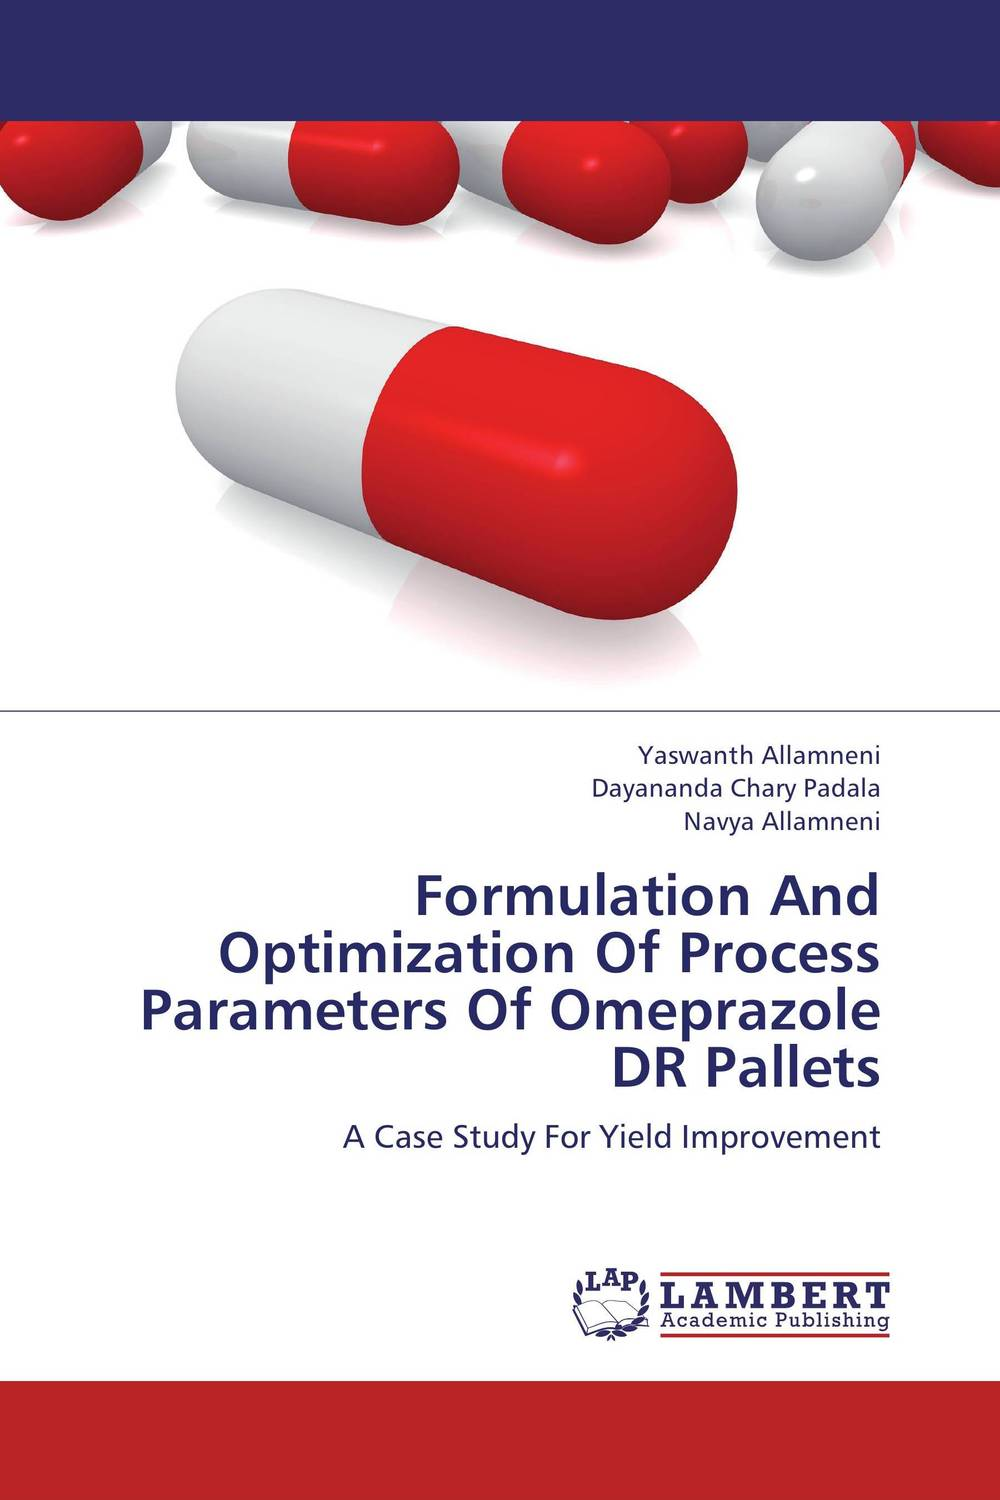 Formulation And Optimization Of Process Parameters Of Omeprazole DR Pallets autocad 2016建筑园林景观施工图设计从入门到精通(第2版)